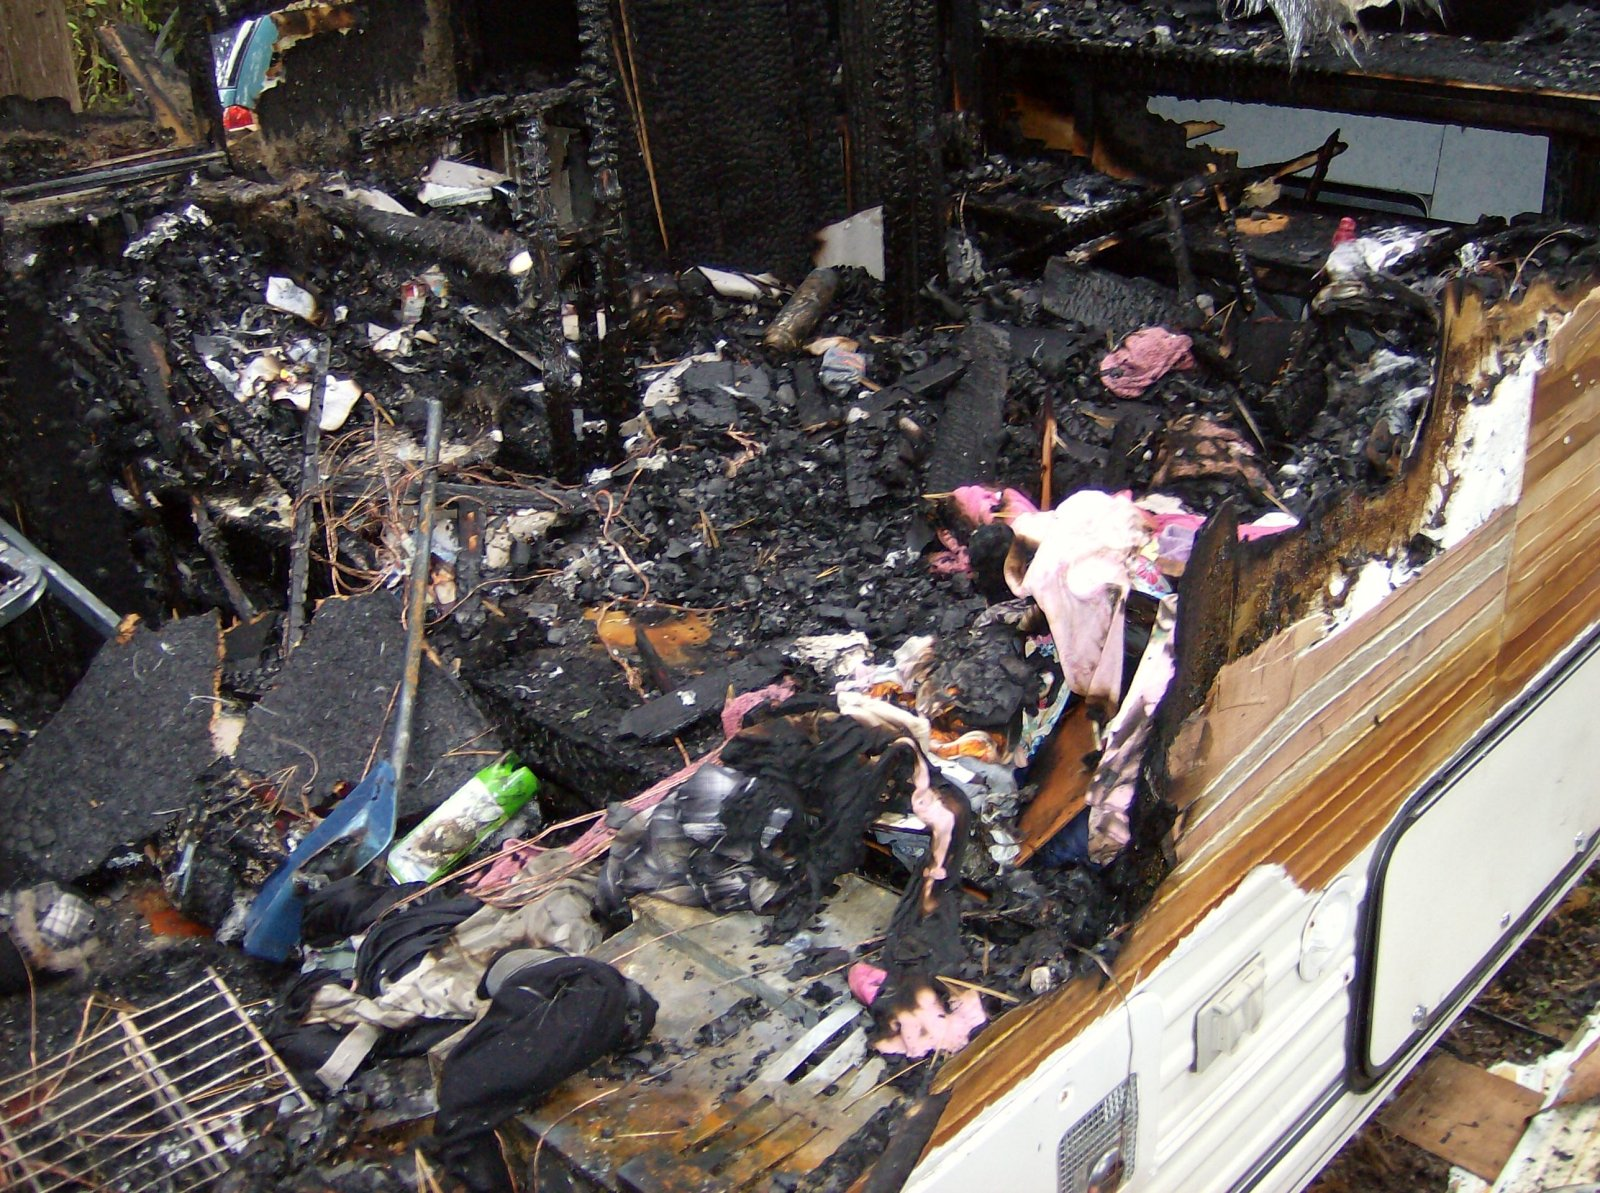 Click image for larger version  Name:Fire Damaged Trailer 008.jpg Views:109 Size:484.5 KB ID:112192